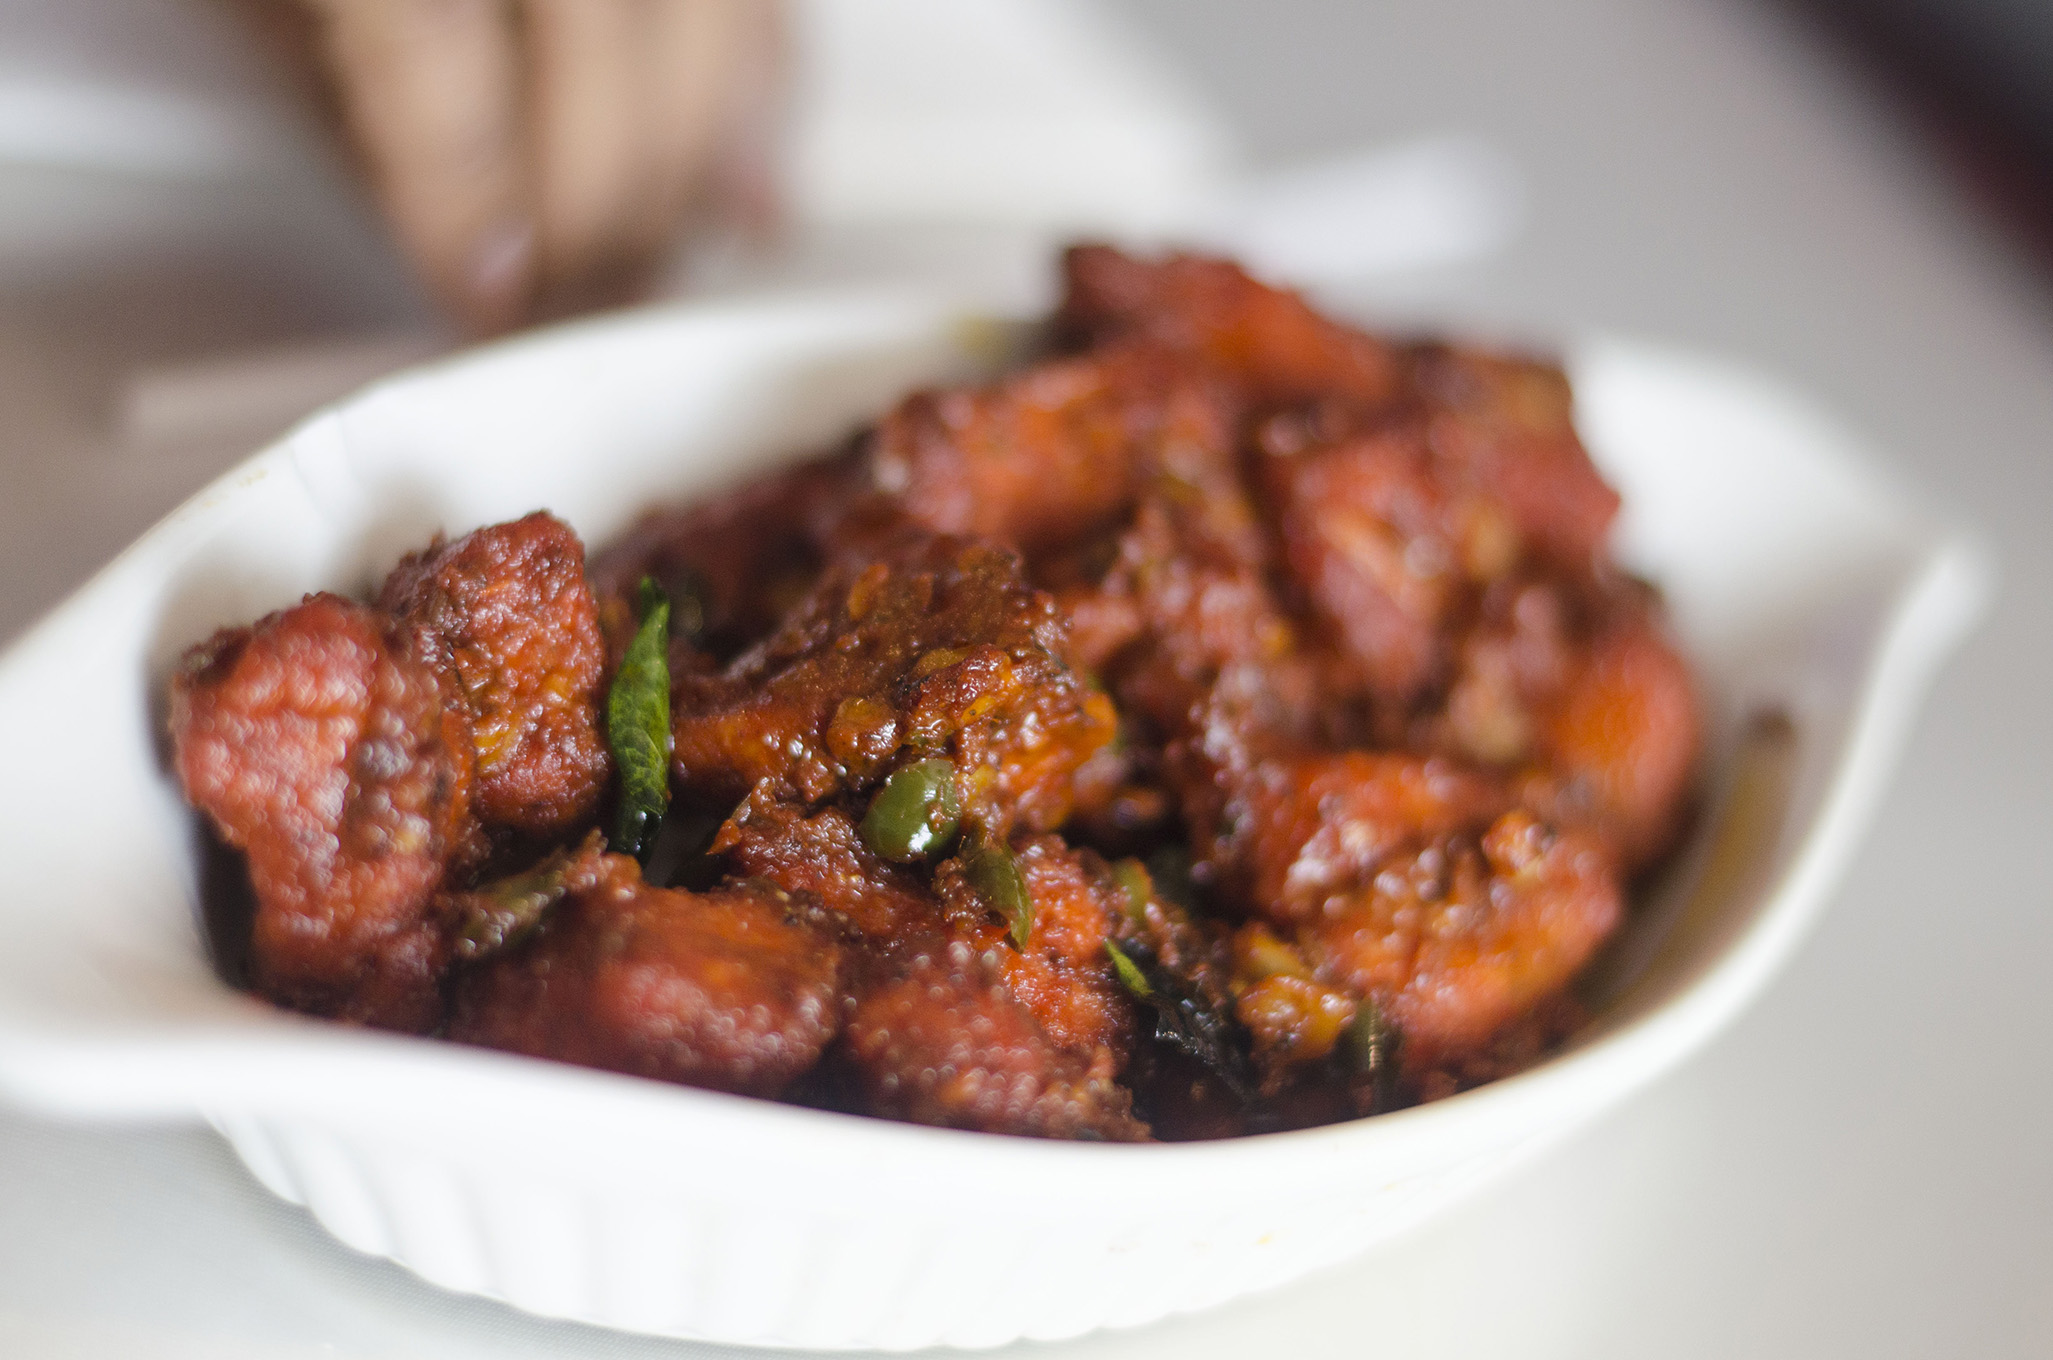 Chicken 65 from India Paradise in Windsor, Ontario.